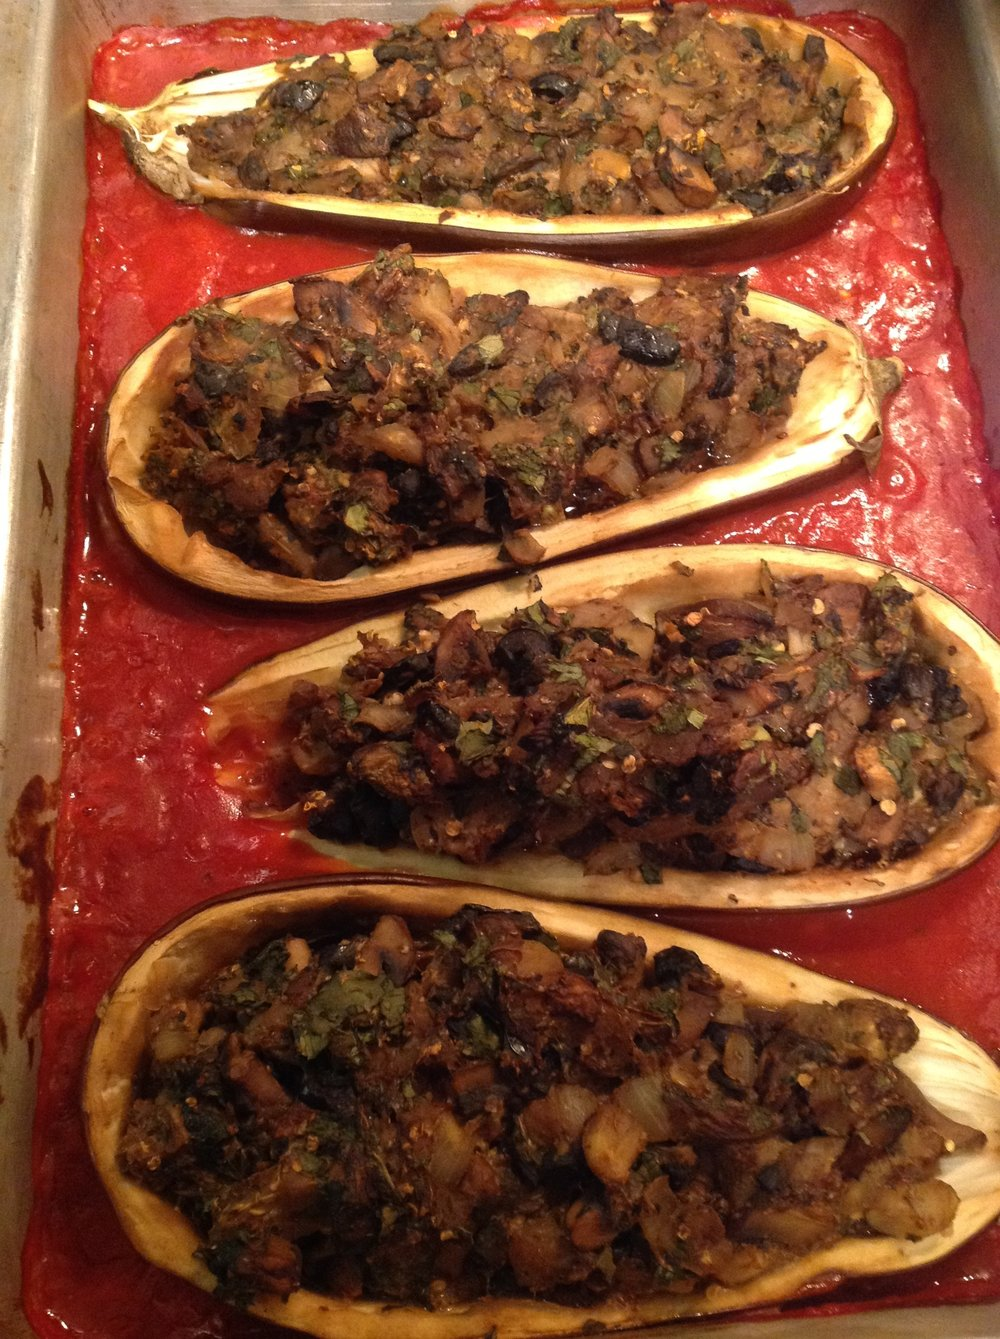 Chef's Tip:  Cover and bake the Sardinia Stuffed Eggplant for 35-40 minutes, until golden brown and tender.  This makes an impressive, satisfying plant-based Italian vegan dinner